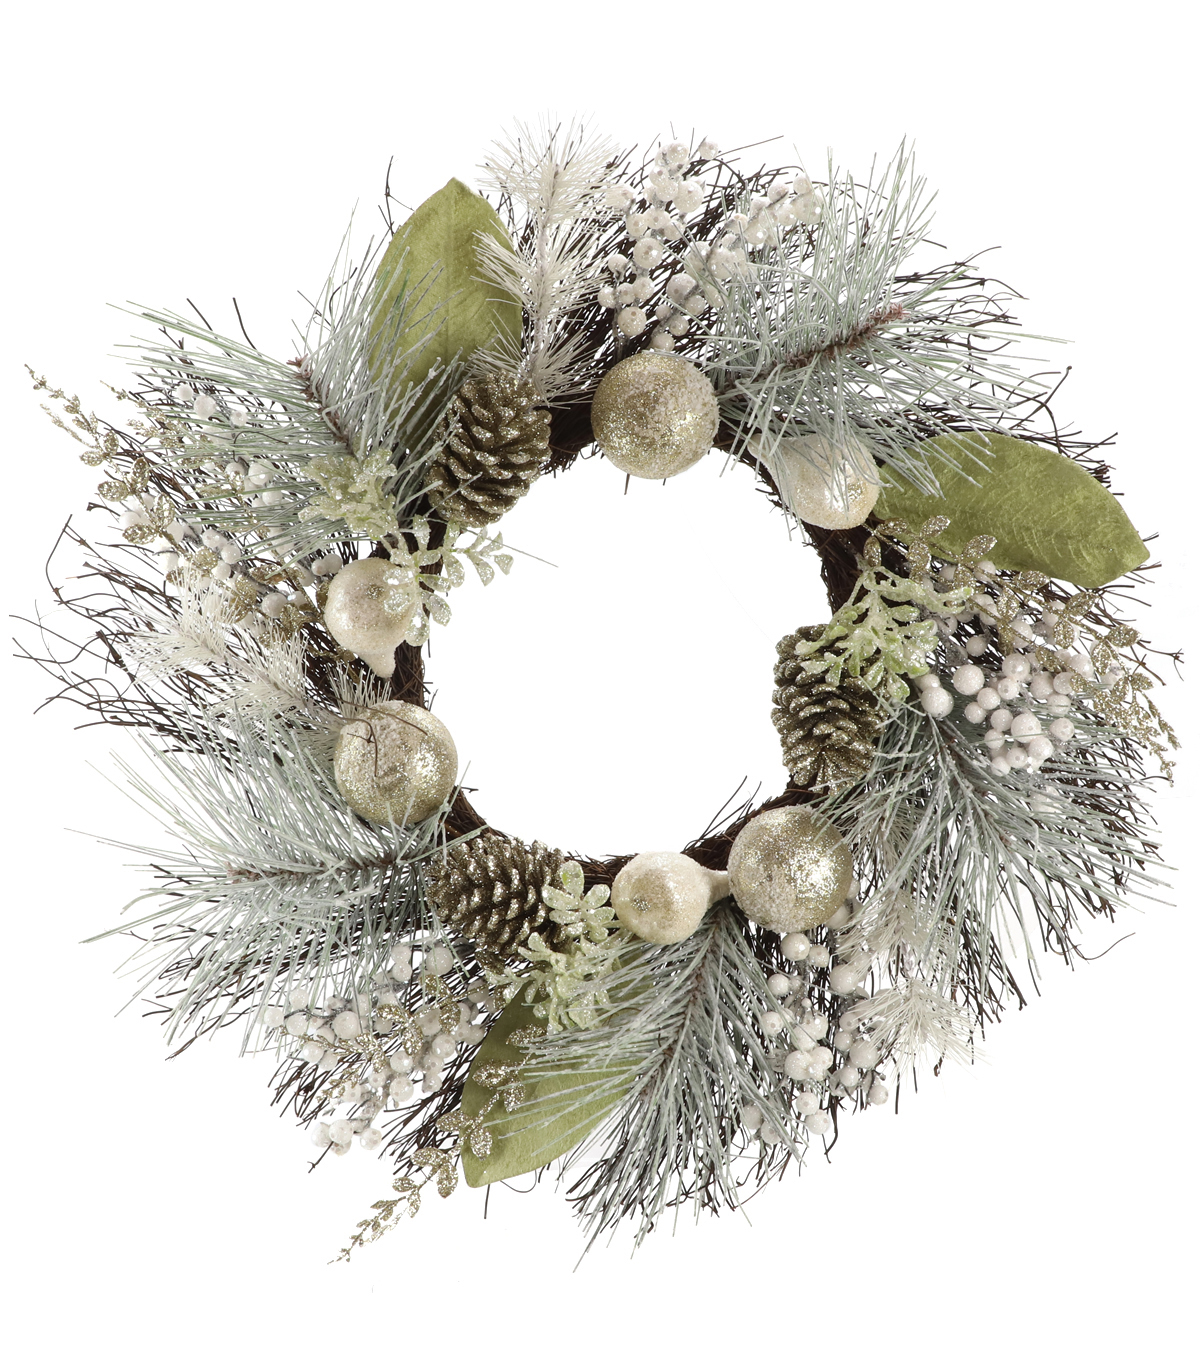 Handmade Holiday Christmas Pinecone & Frosted Champagne Ornament Wreath